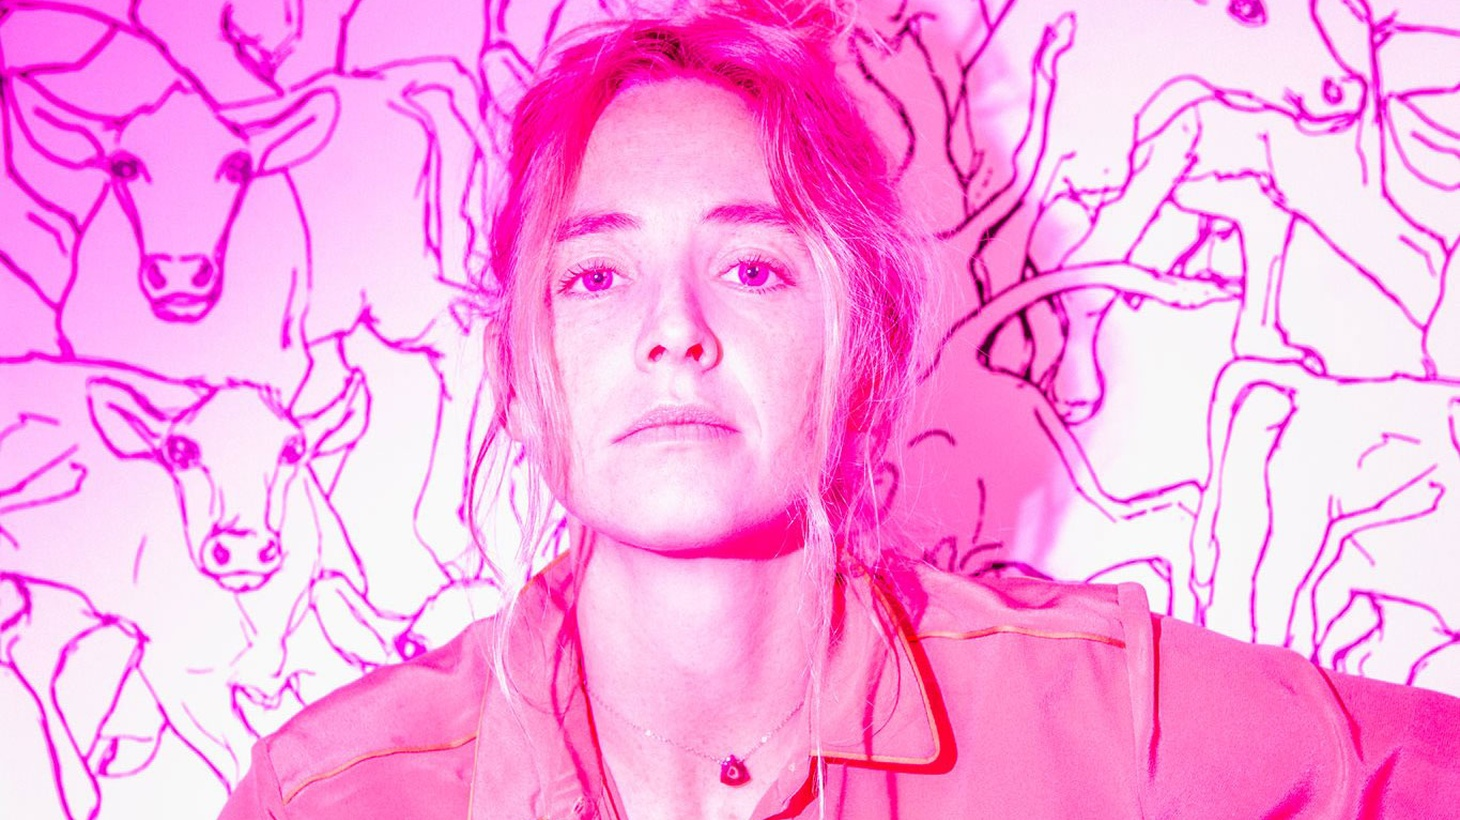 For her upcoming 4th album, singer/songwriter Lissie combines introspection with dream-pop.